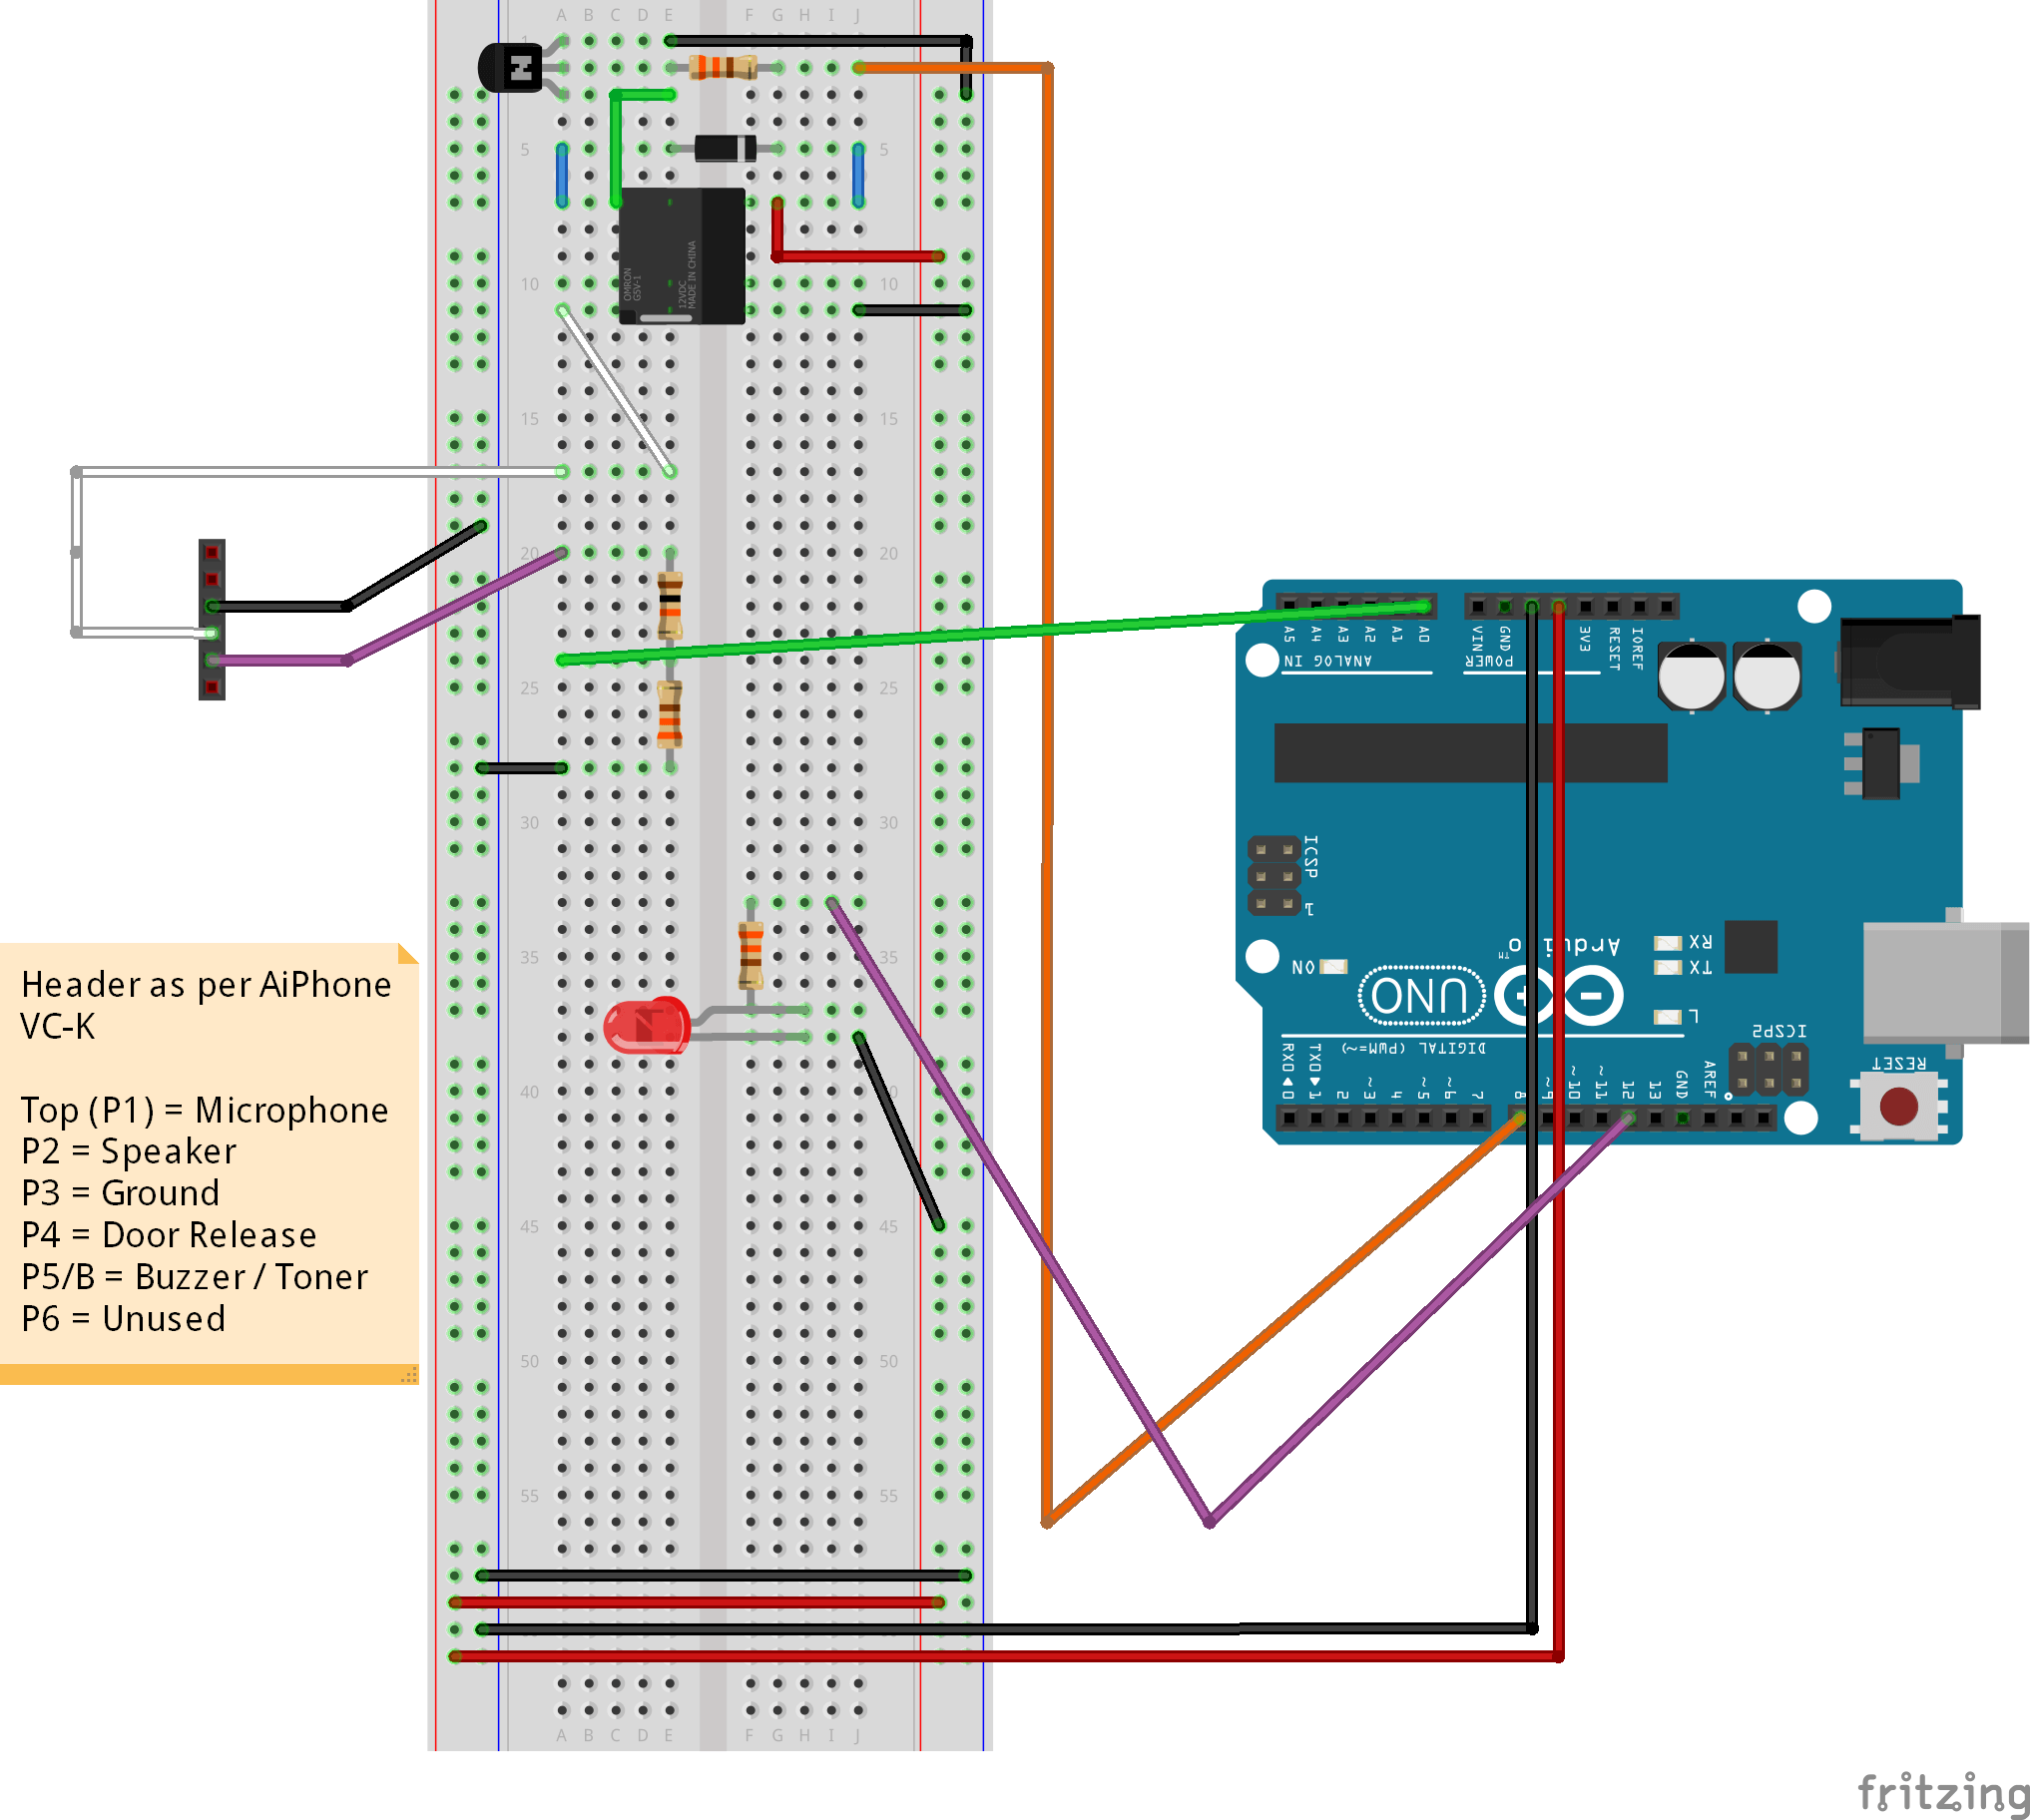 Aiphone Vc K Wiring Diagram 27 Images Lef 3l Arduino Buzzer V1 Bb Remote Building Entry Hack Step 2 The Alpha Build Tales Of A Tech Fritzing Guide